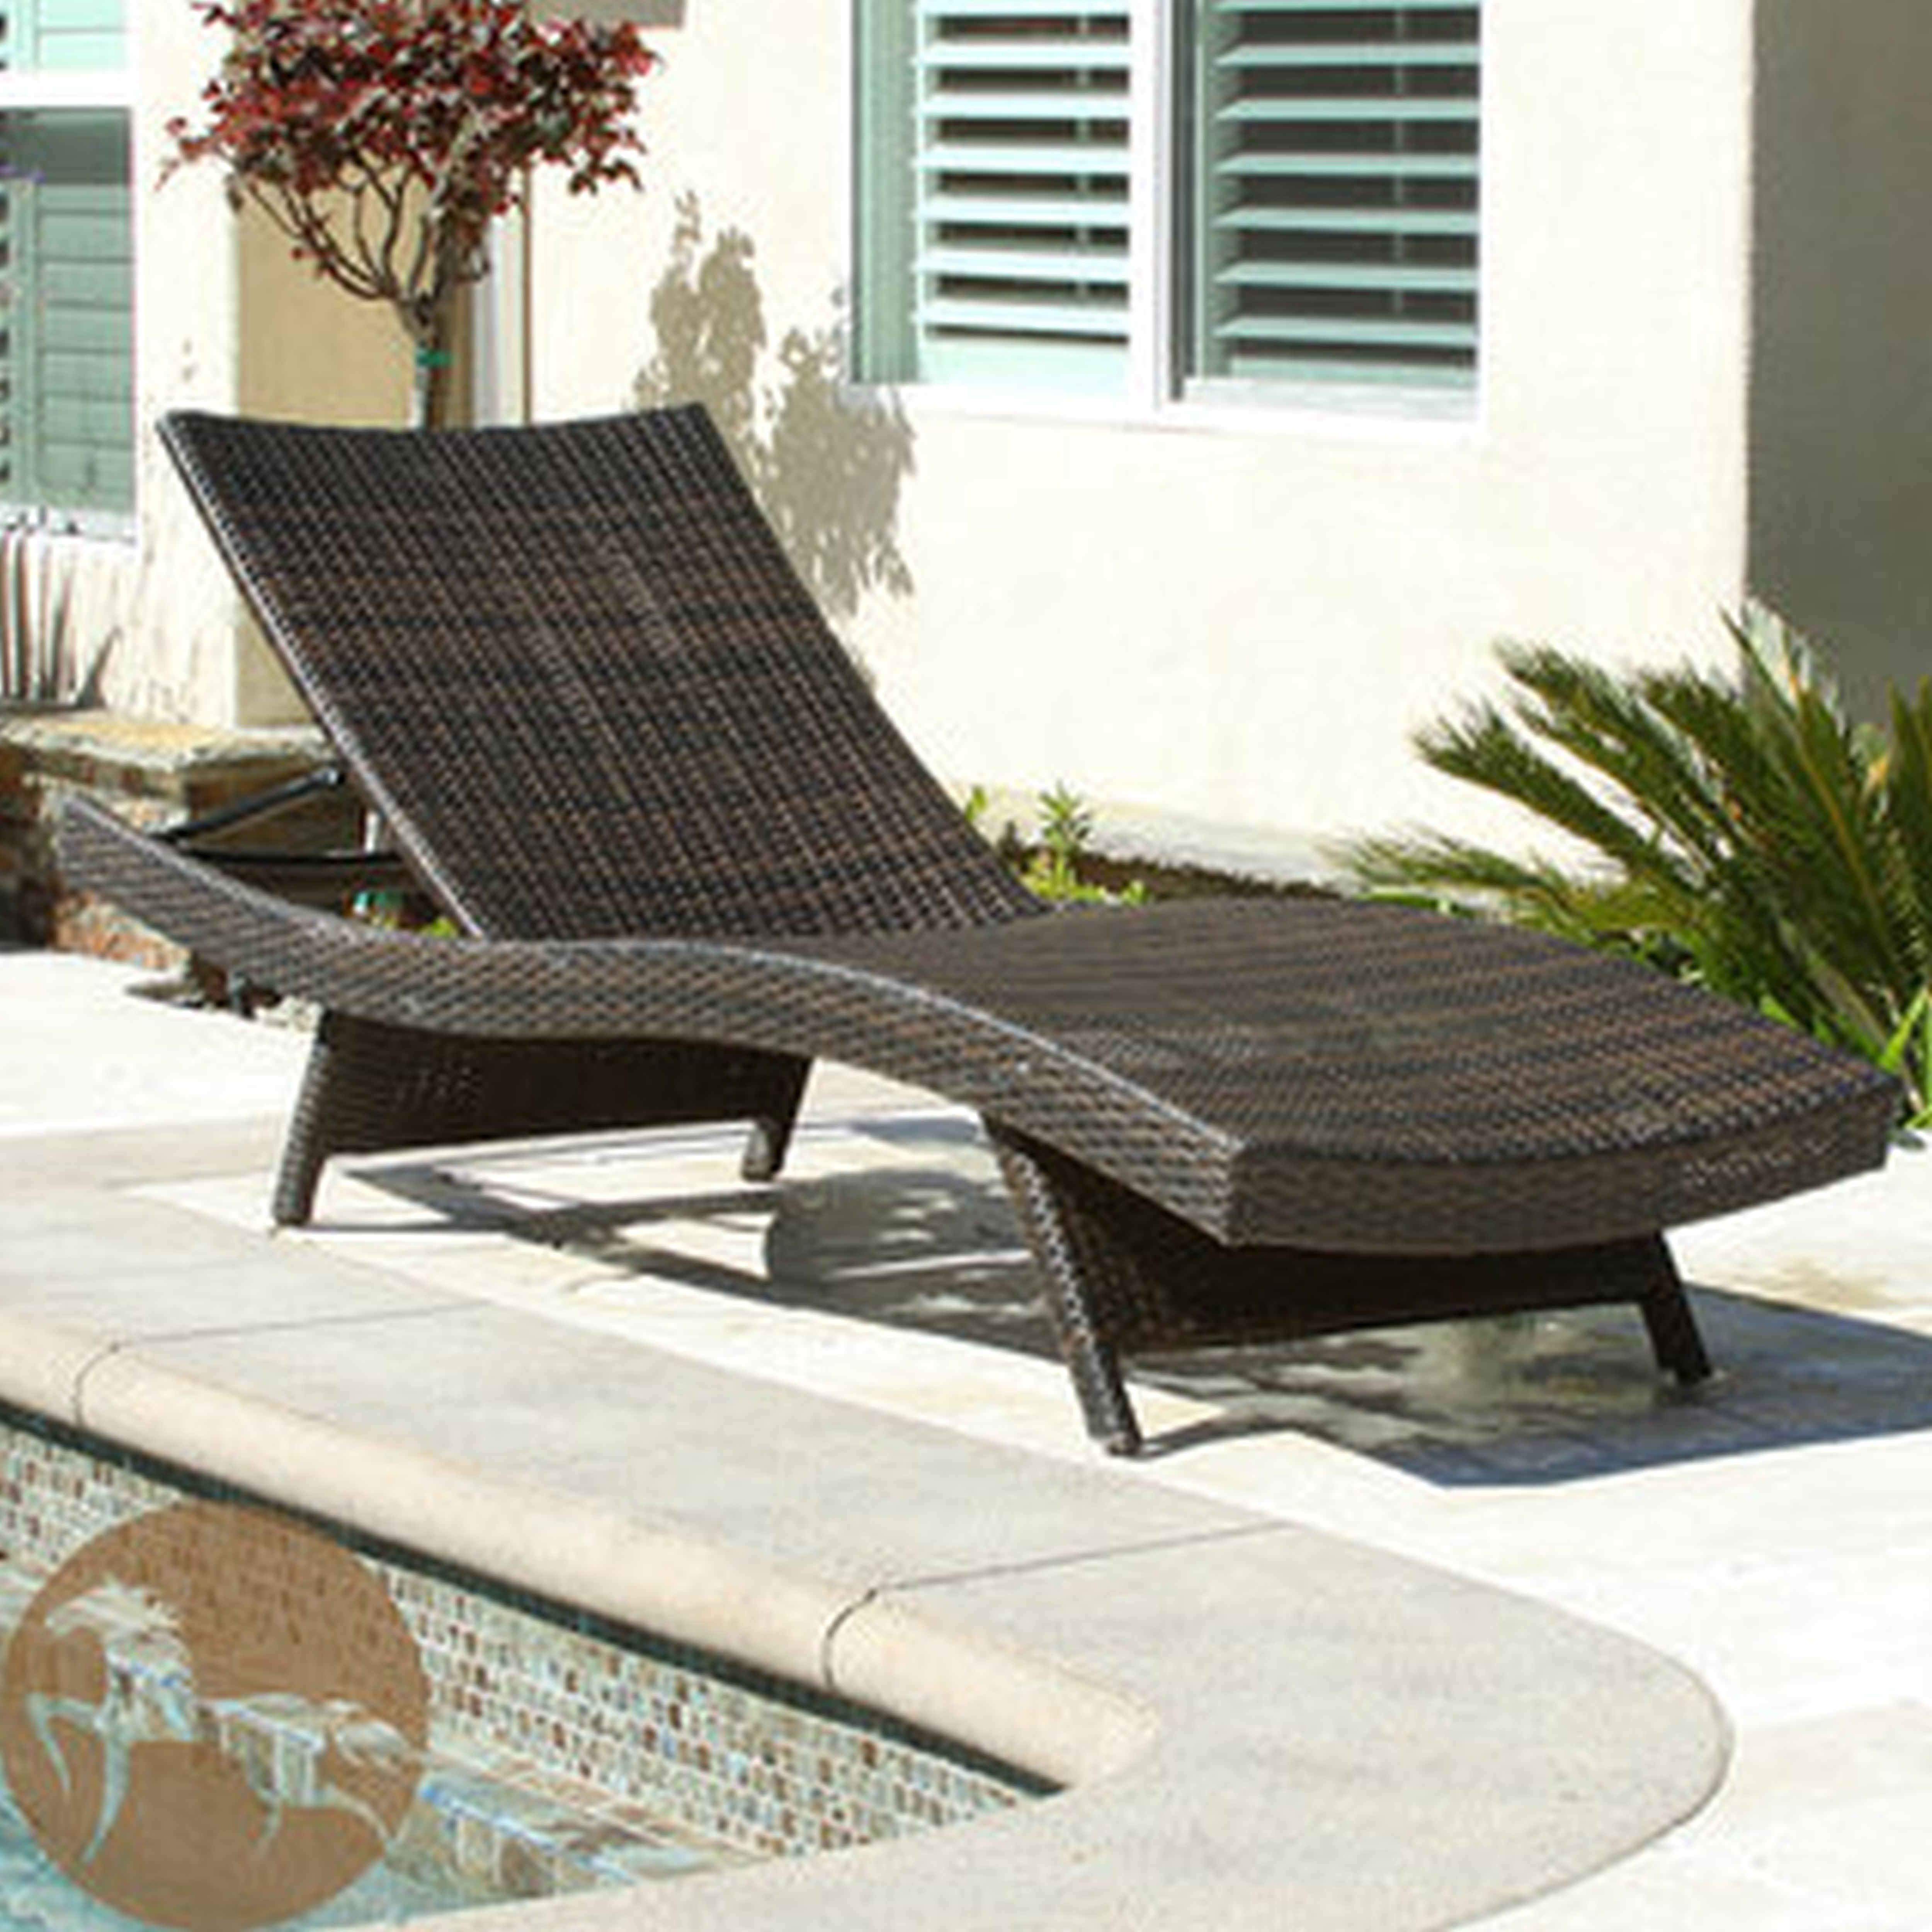 explore gallery of deck chaise lounge chairs showing 11 of 15 photos